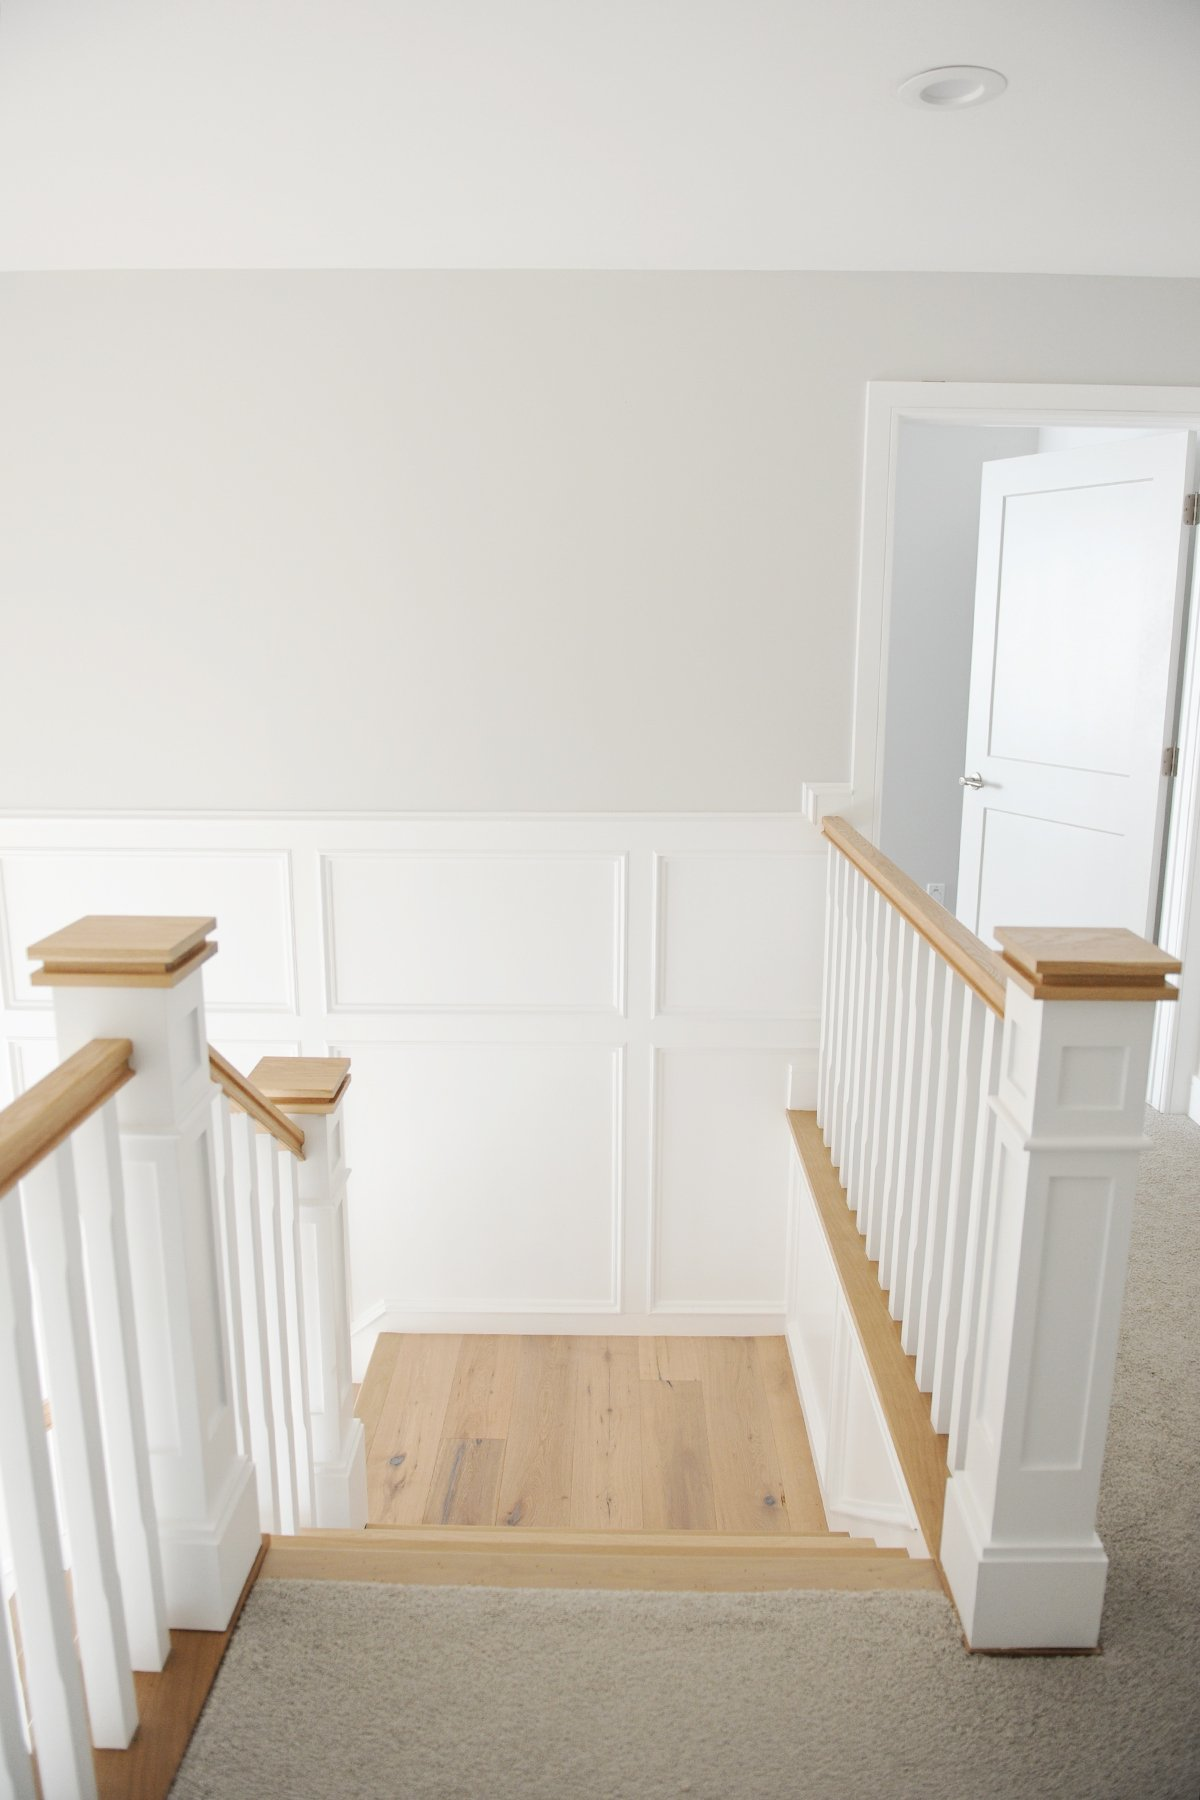 millwork in the entry way